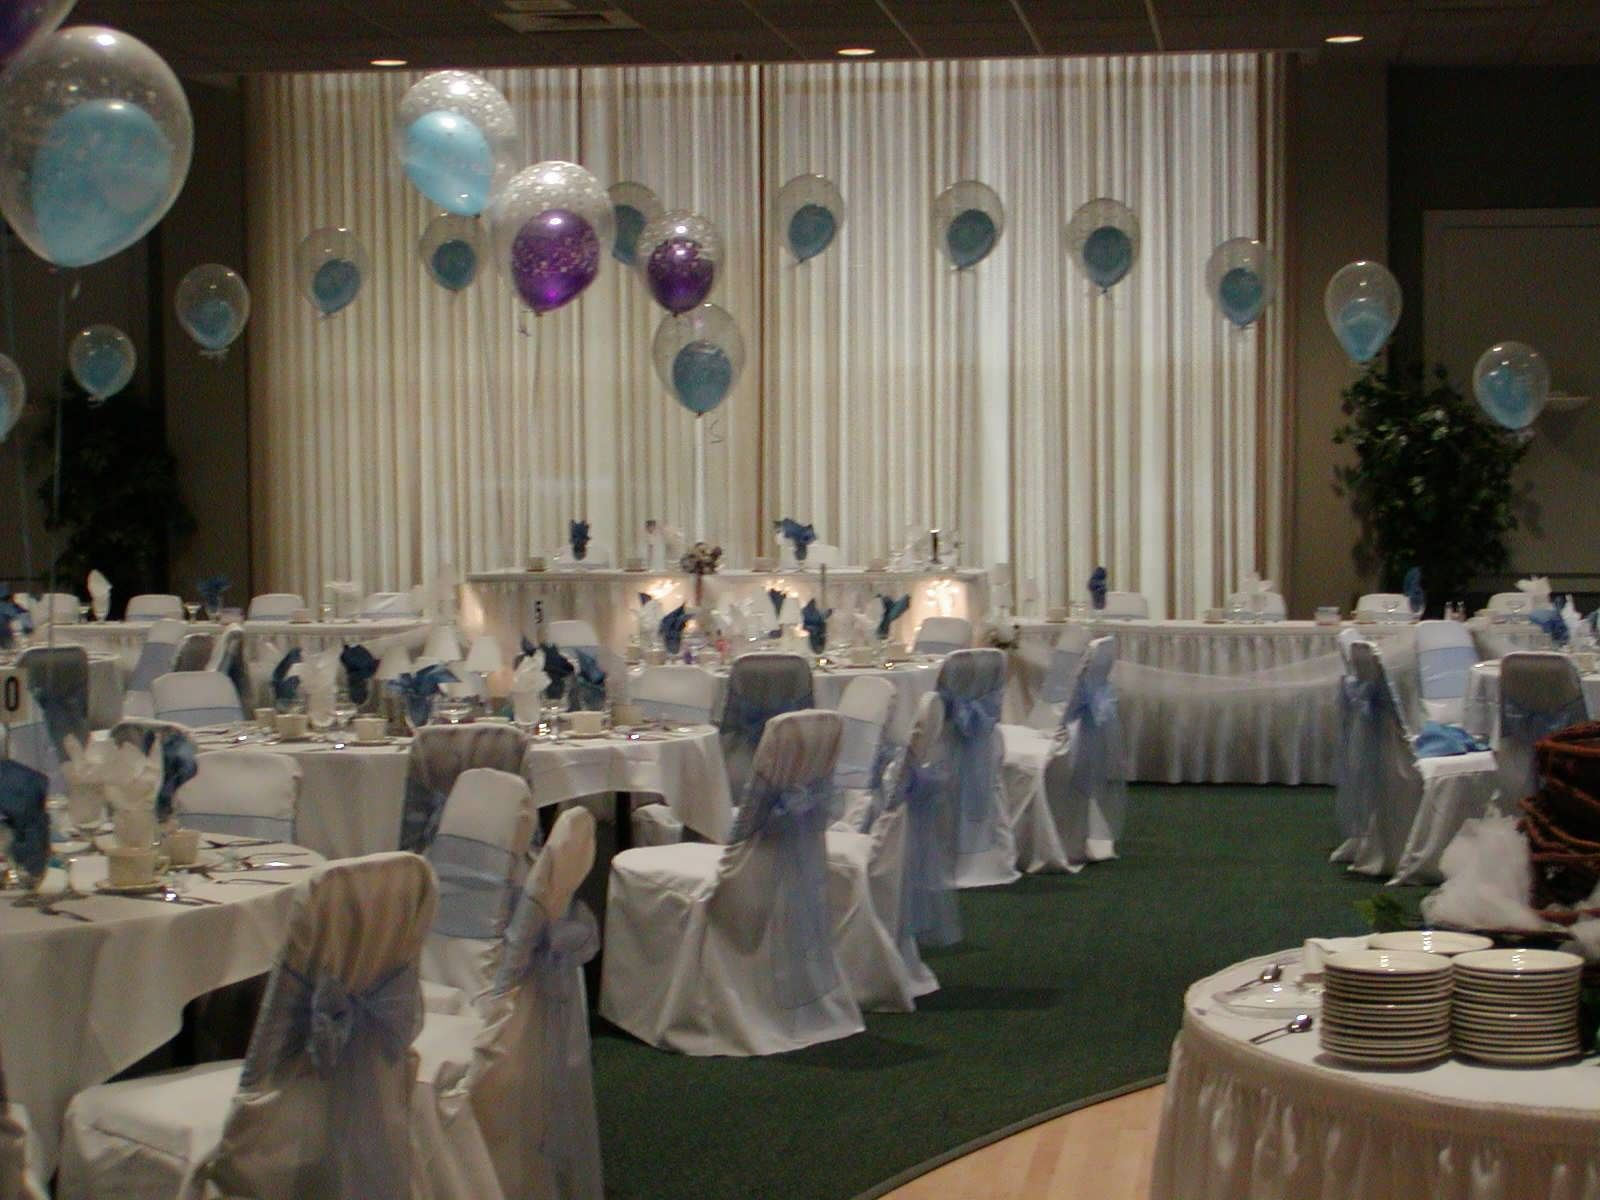 50th wedding anniversary decorations ideas included for Balloon decoration ideas for weddings